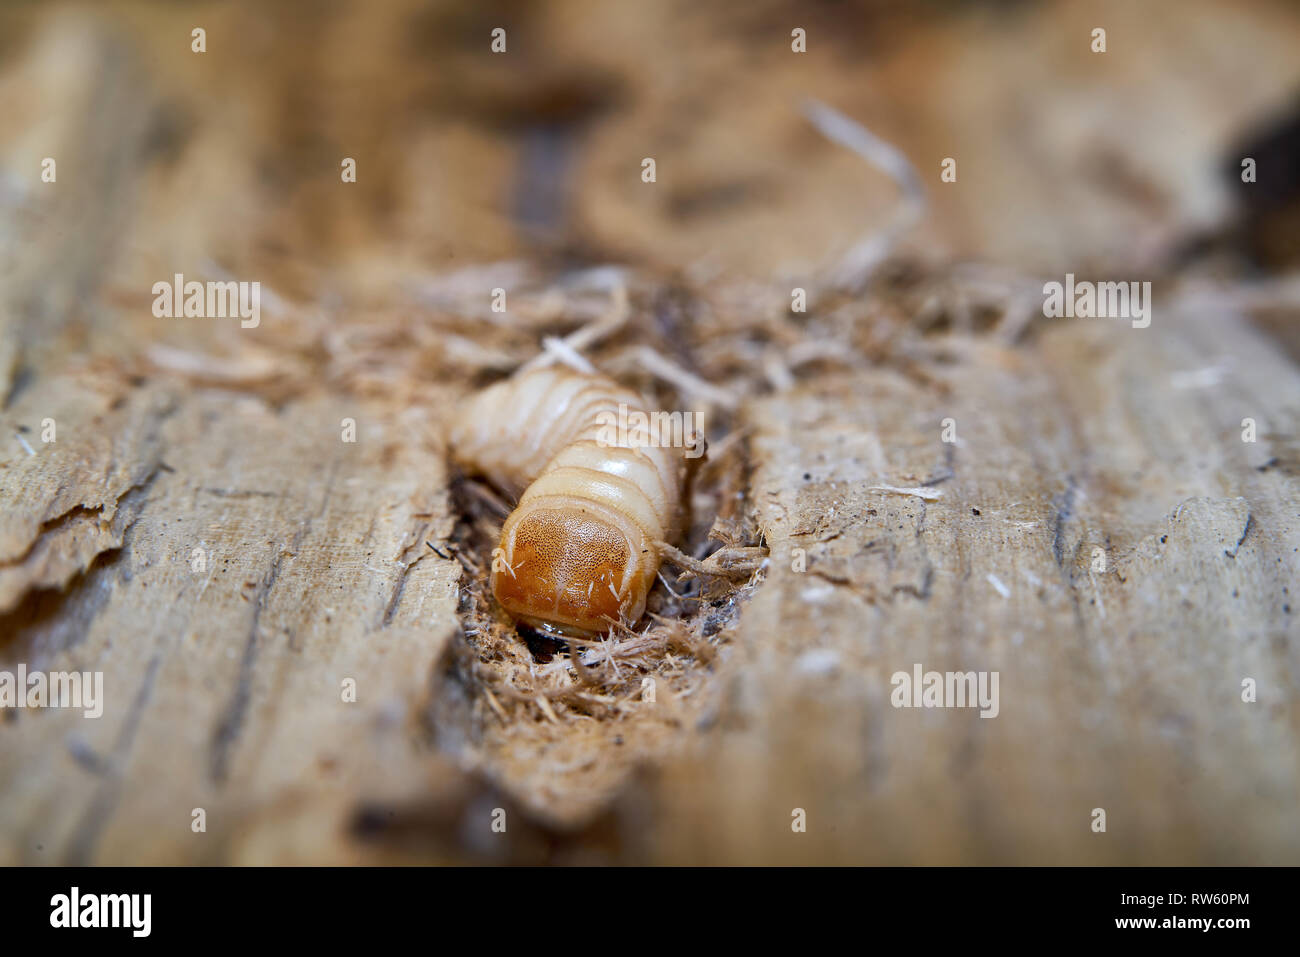 Larva of a large poplar longhorn beetle (Saperda carcharias) in the wood of a poplar tree - Stock Image